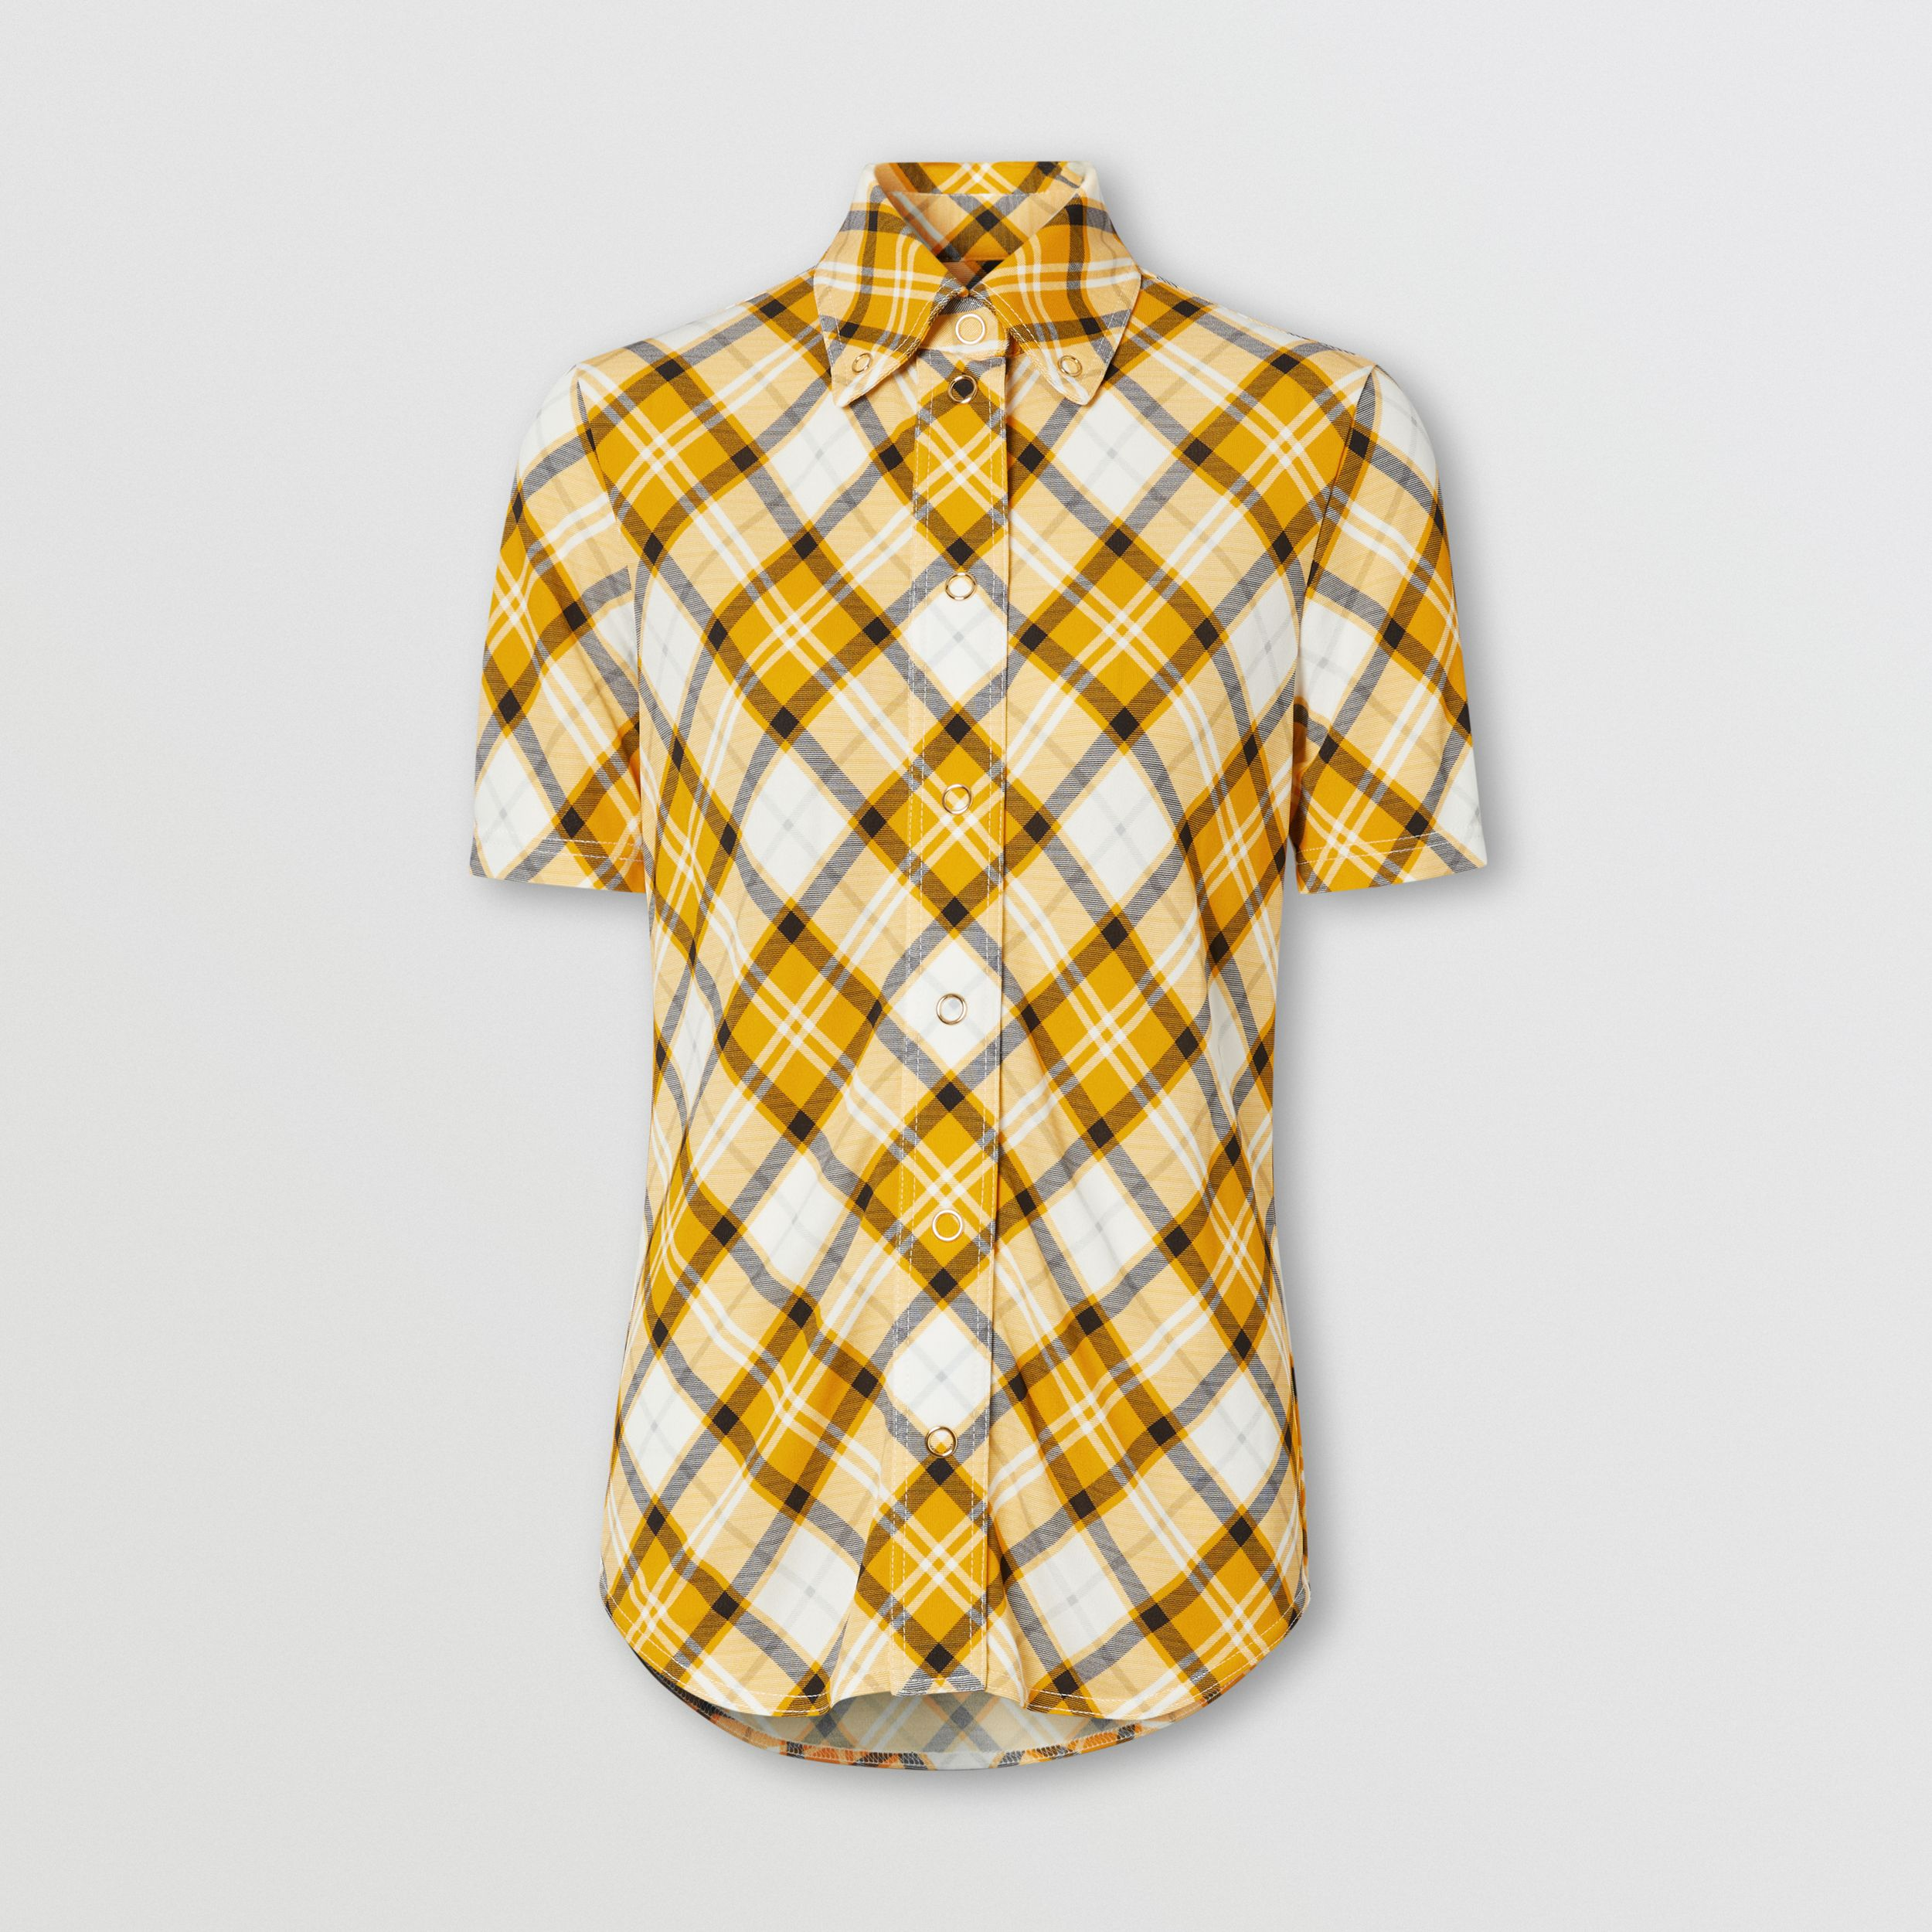 Short-sleeve Check Jersey Shirt in Citrus Orange - Women | Burberry Canada - 3